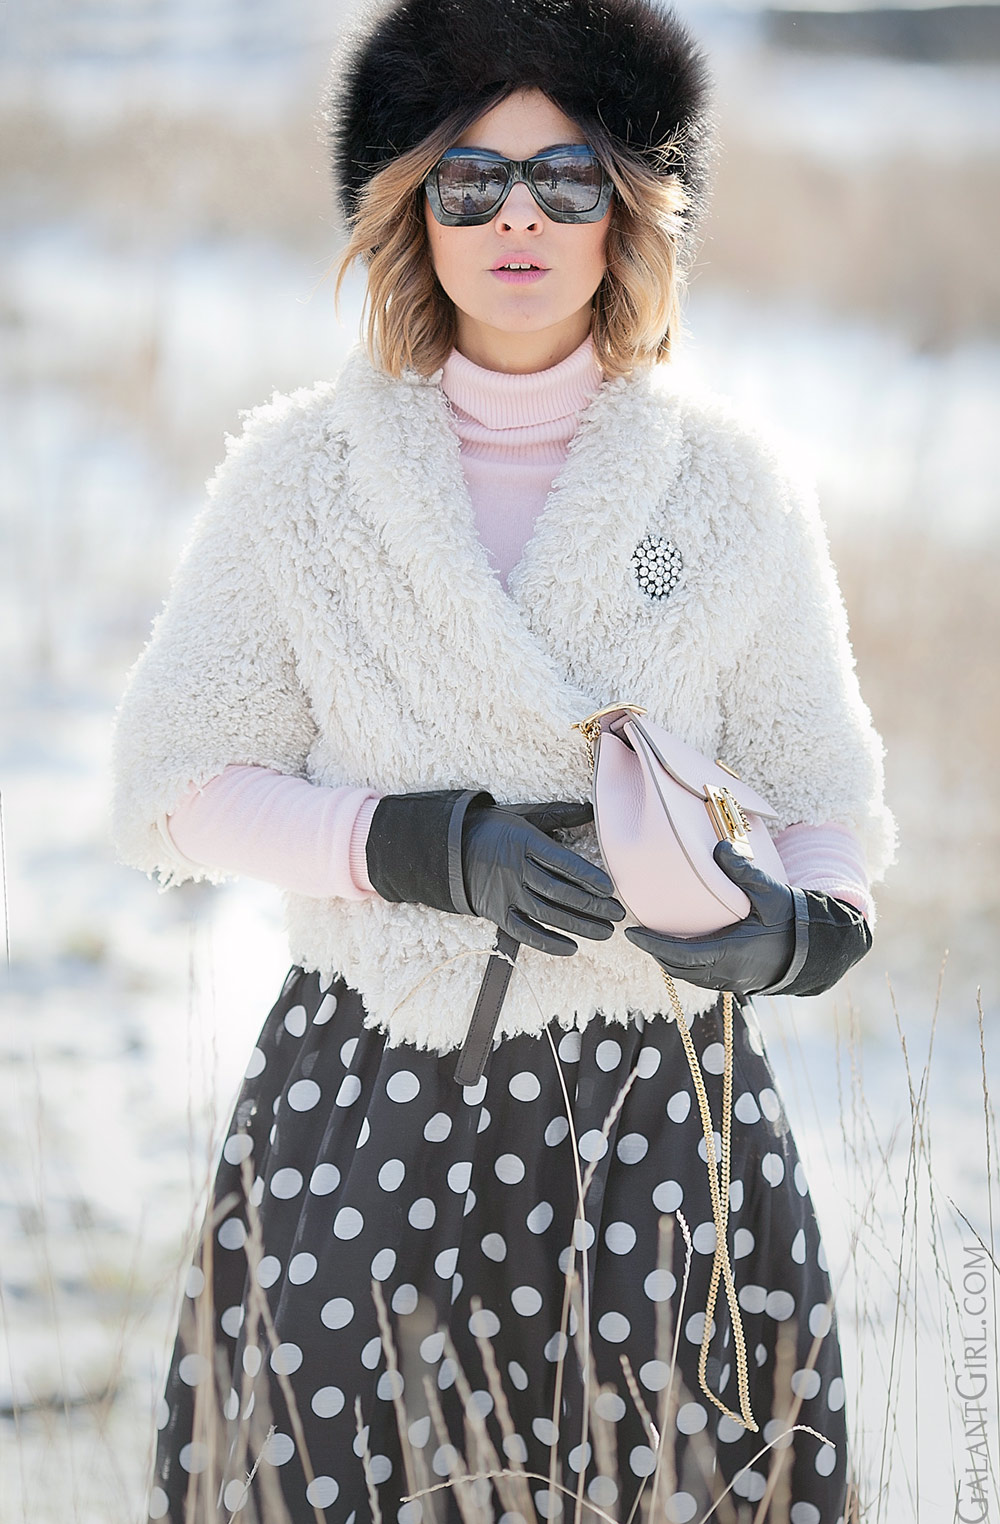 cold weather outfit for winter with faux fur coat and polka dot skirt